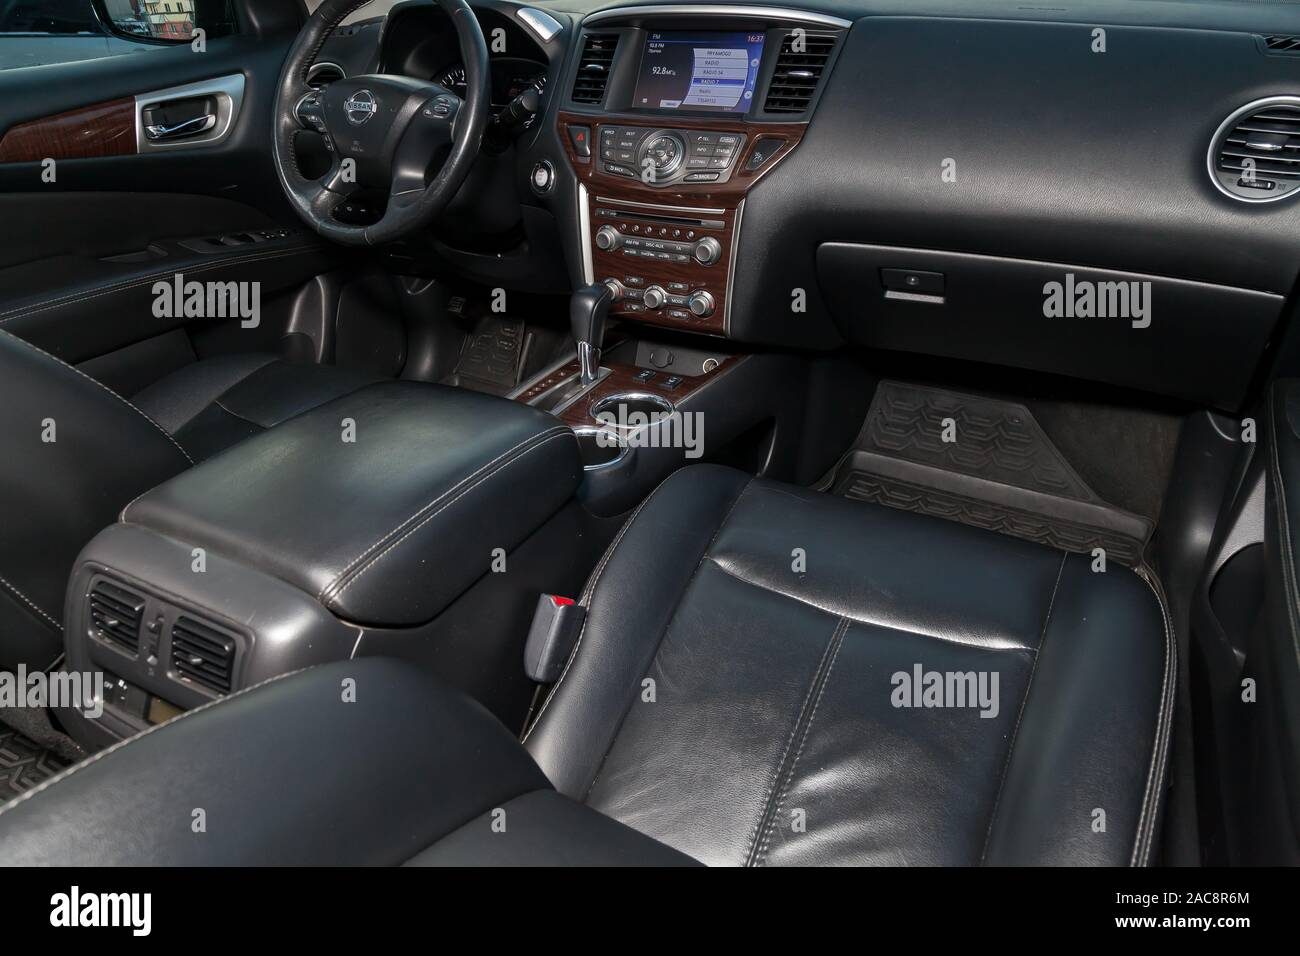 Novosibirsk Russia 11 28 2019 View To The Interior Of Nissan Pathfinder 2015 With Dashboard Clock Media System Front Seats And Steering Wheel A Stock Photo Alamy